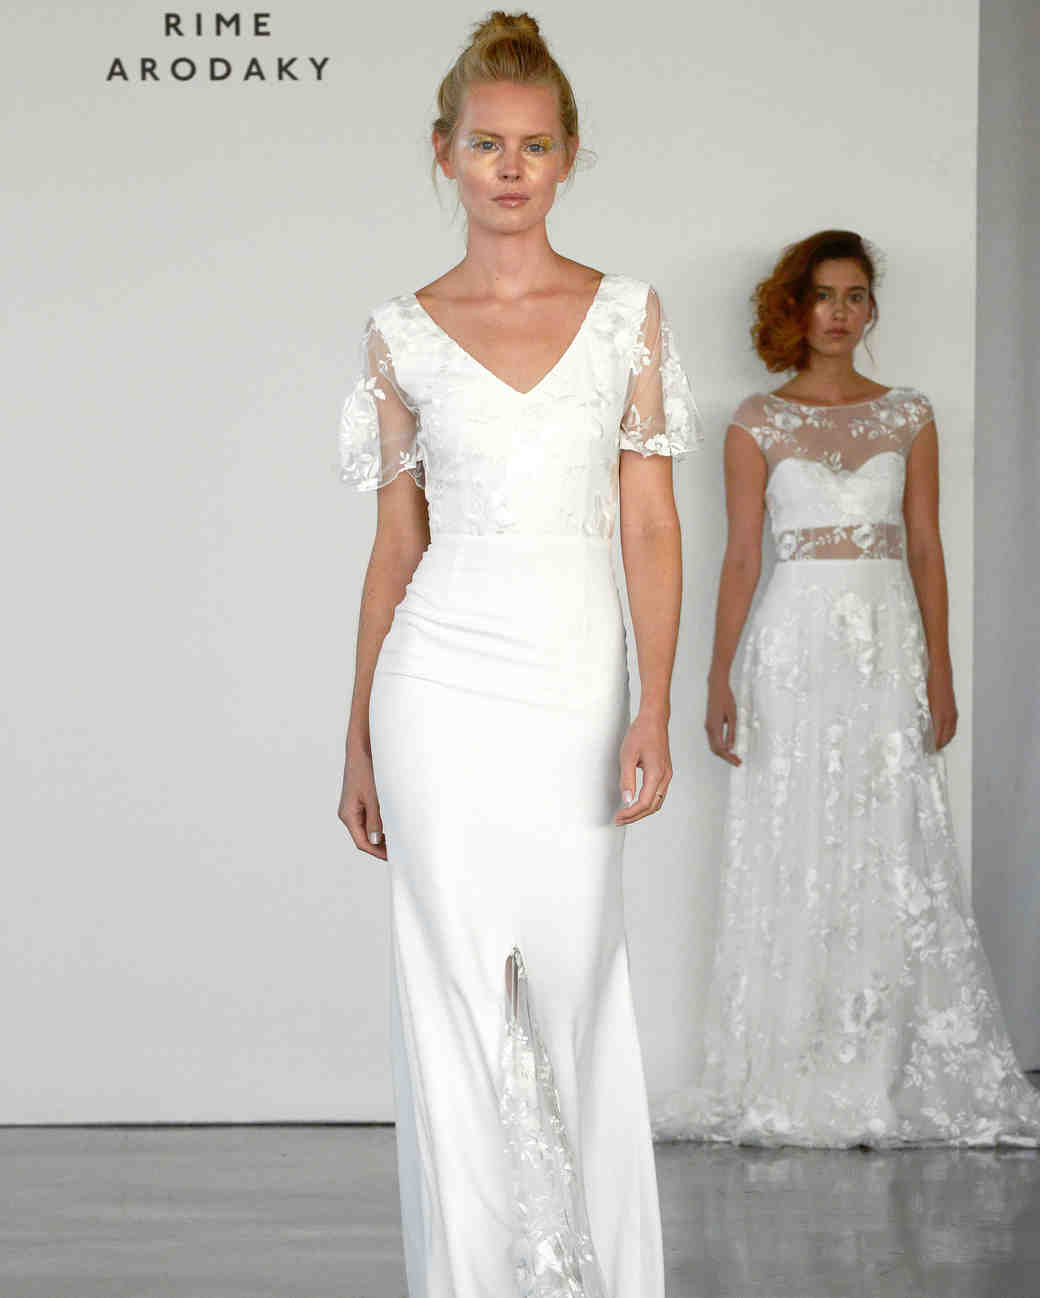 Rime Arodaky wedding dress 24 Fall 2017